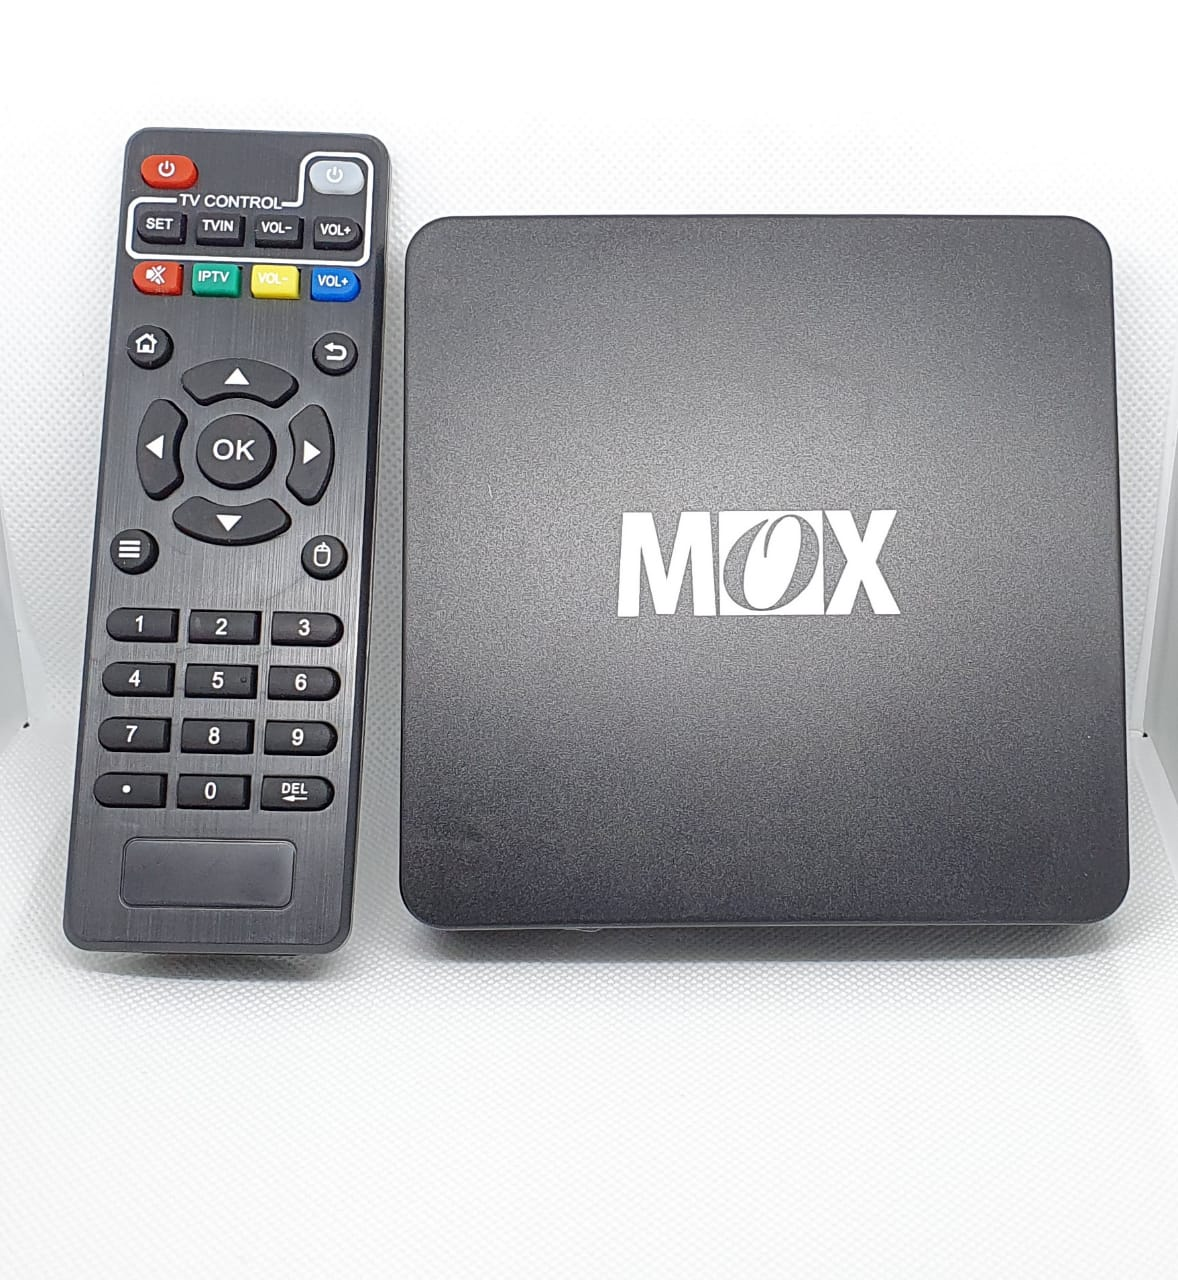 TV BOX MOX 1GB RAM 8GB ROOM